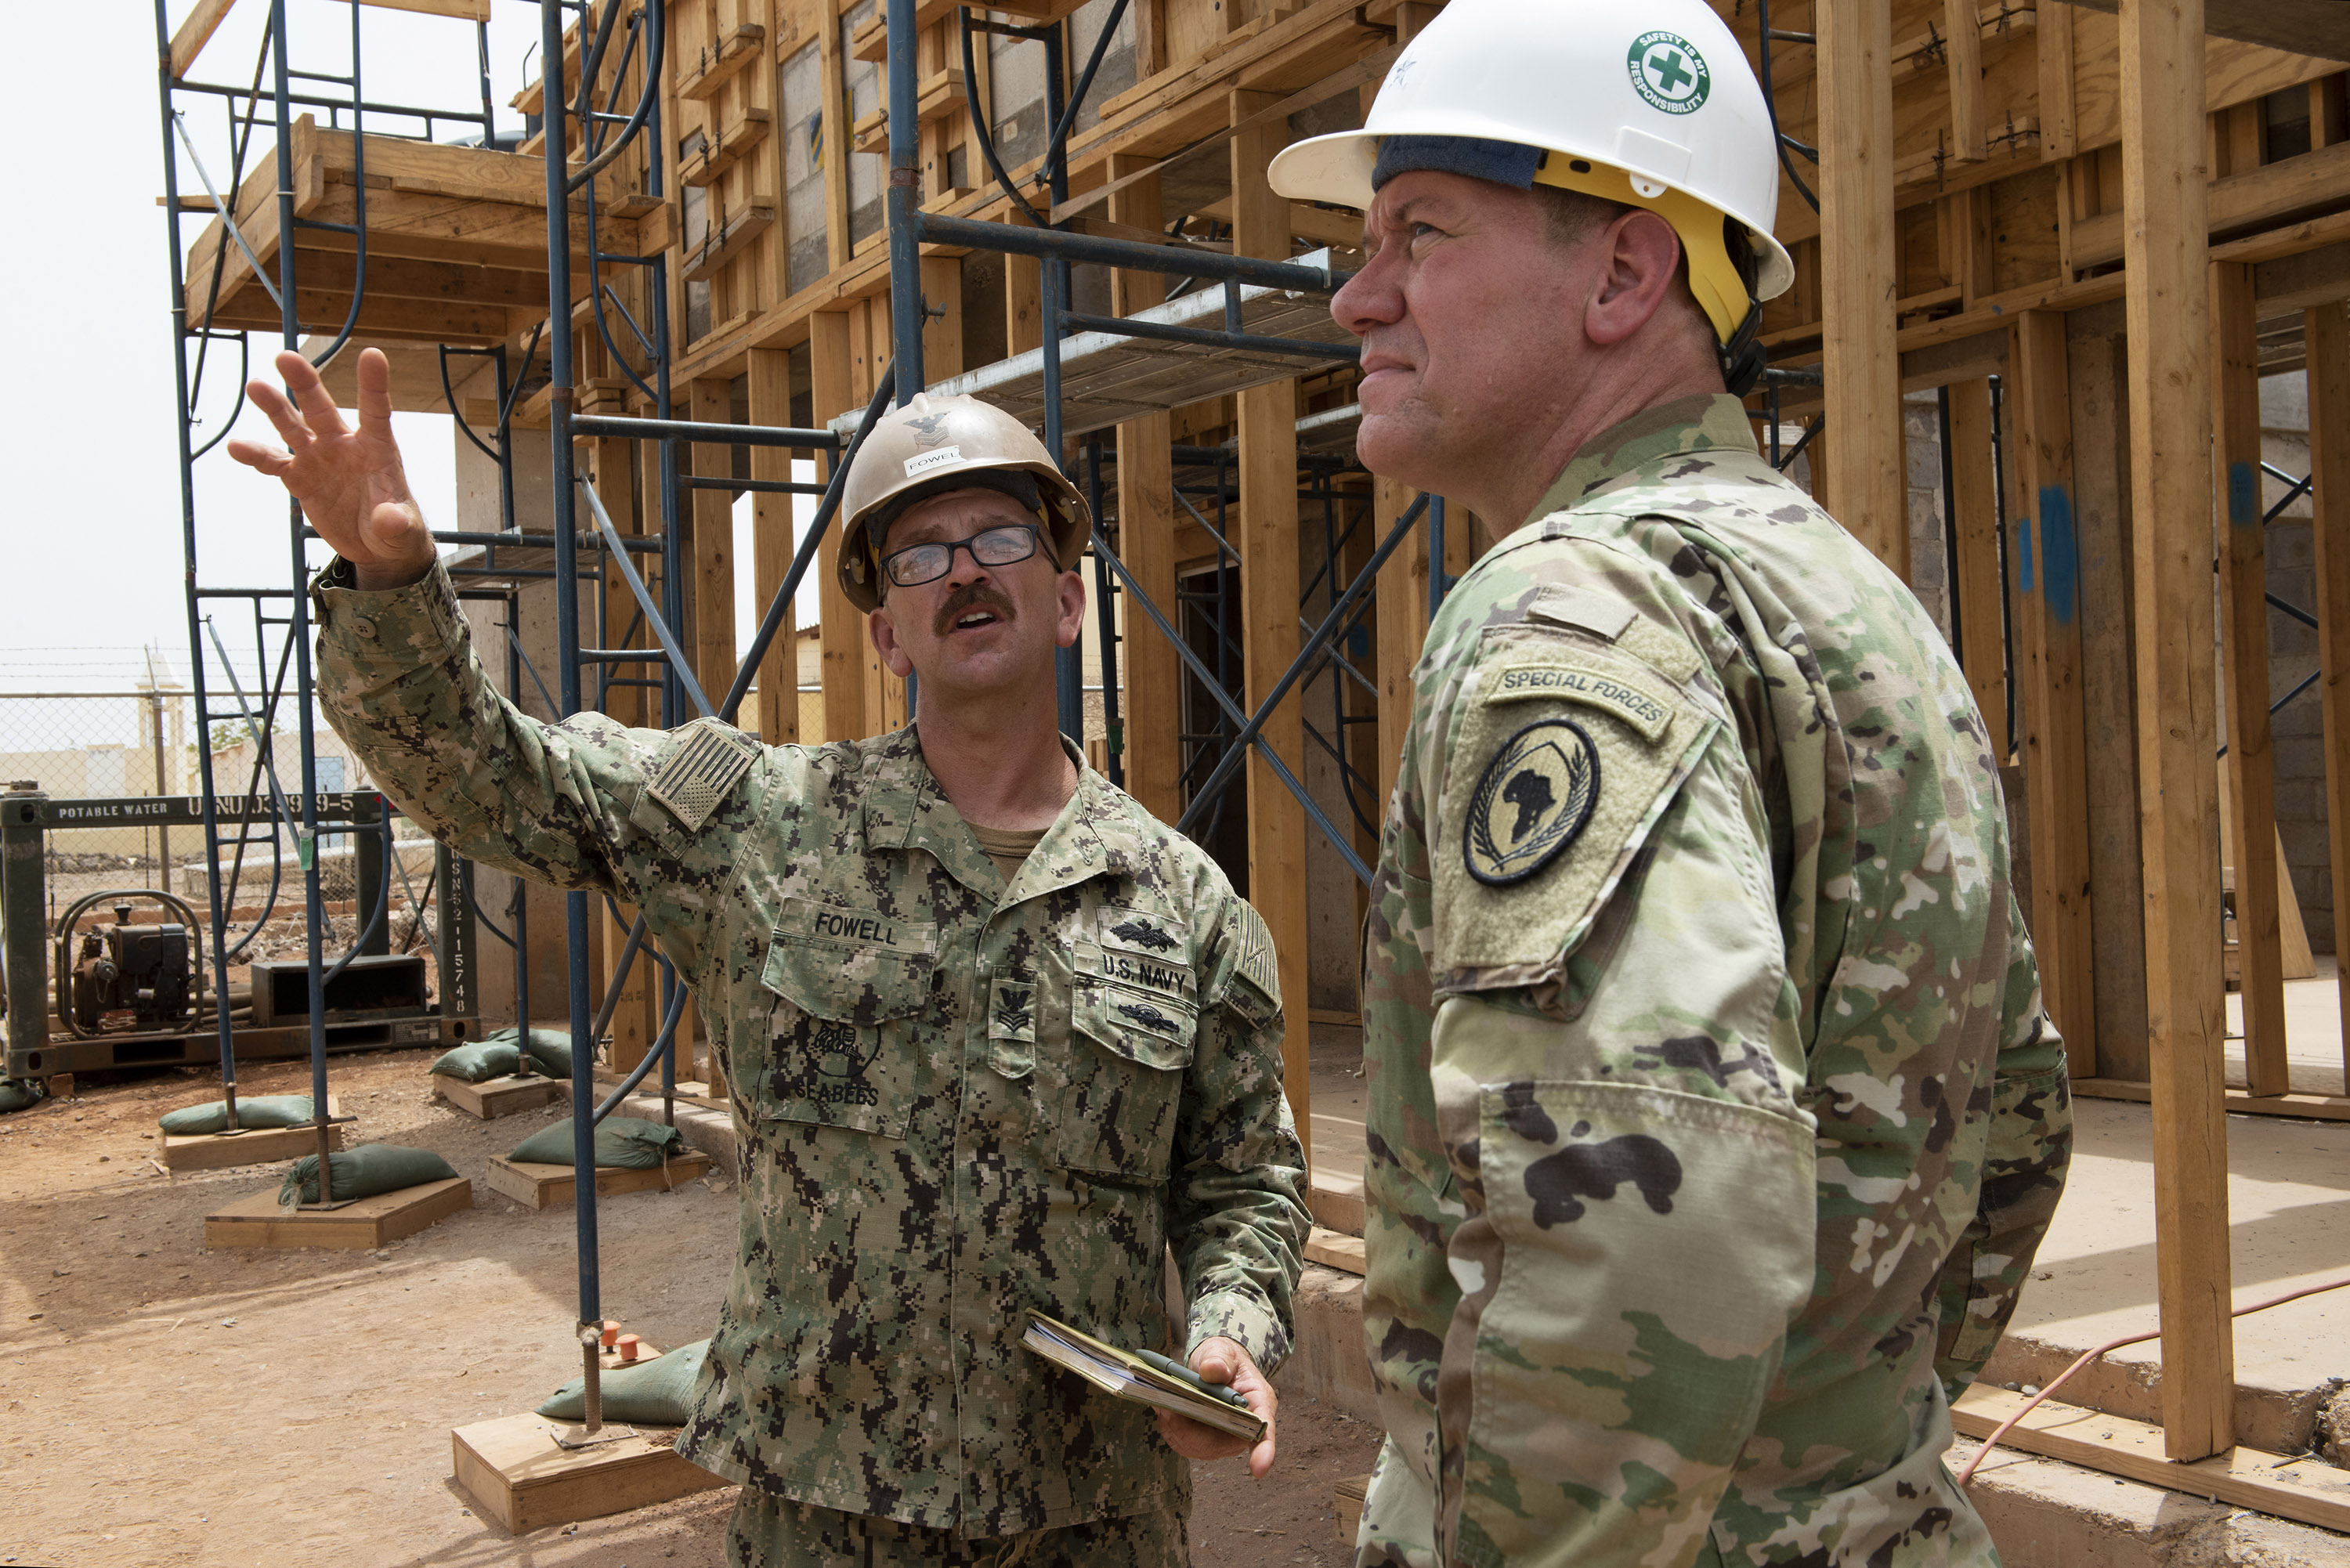 U.S. Navy Builder Petty Officer 1st Class Nathan Fowell, project supervisor, Naval Mobile Construction Battalion 11, Combined Joint Task Force - Horn of Africa, gives U.S. Army Maj. Gen. James Craig, commander, CJTF-HOA, a tour of a construction site for a medical center outside of Ali Oune, Djibouti, July 30, 2018. The completed site will include a maternity ward, a nursery and living quarters for medical staff. (U.S. Air National Guard photo by Master Sgt. Sarah Mattison)